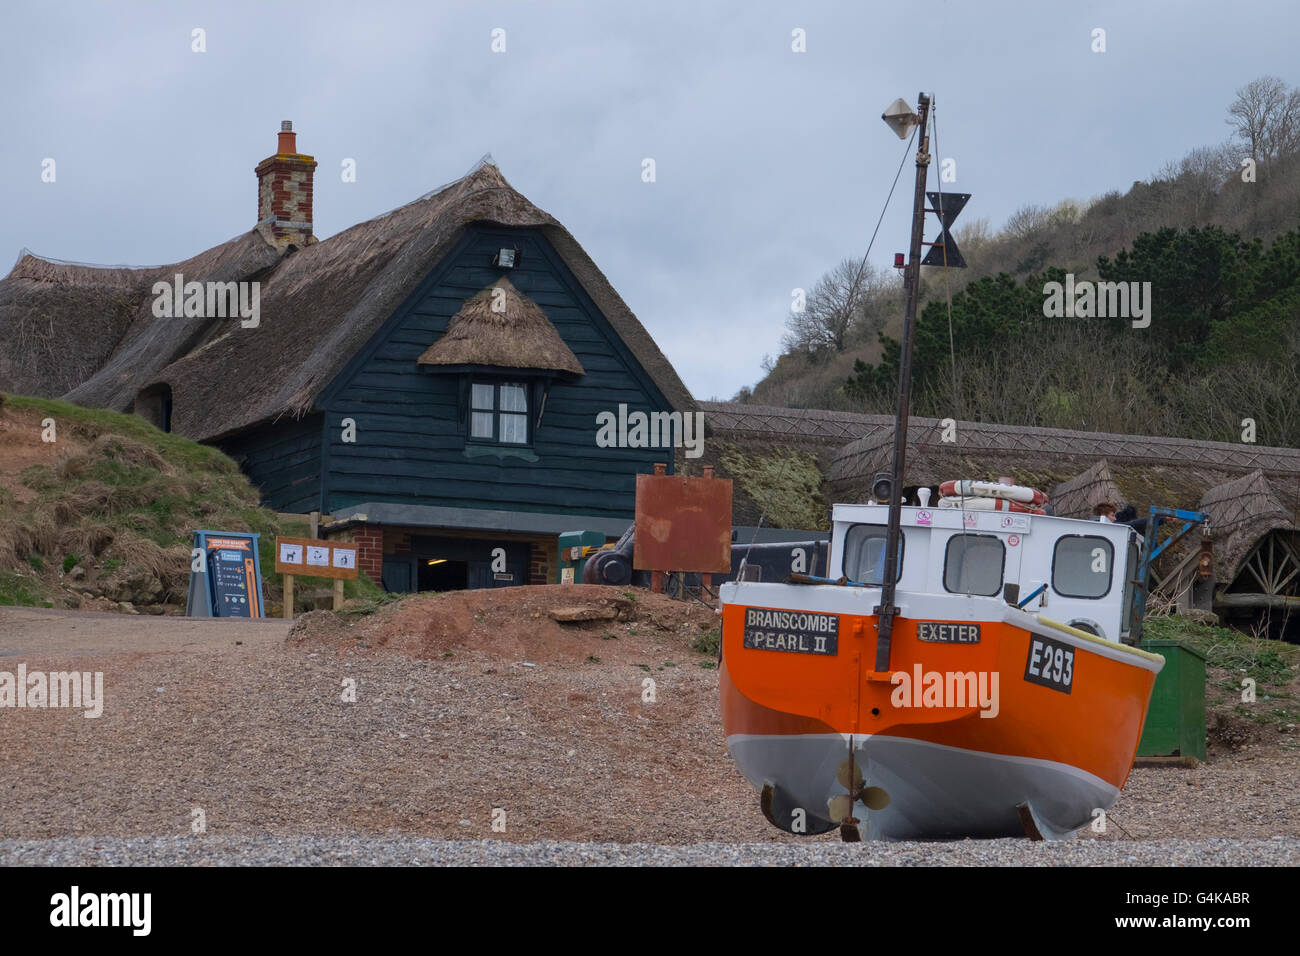 Ornage fishing boat on the beach in front of a thatched building in Dorset - Stock Image